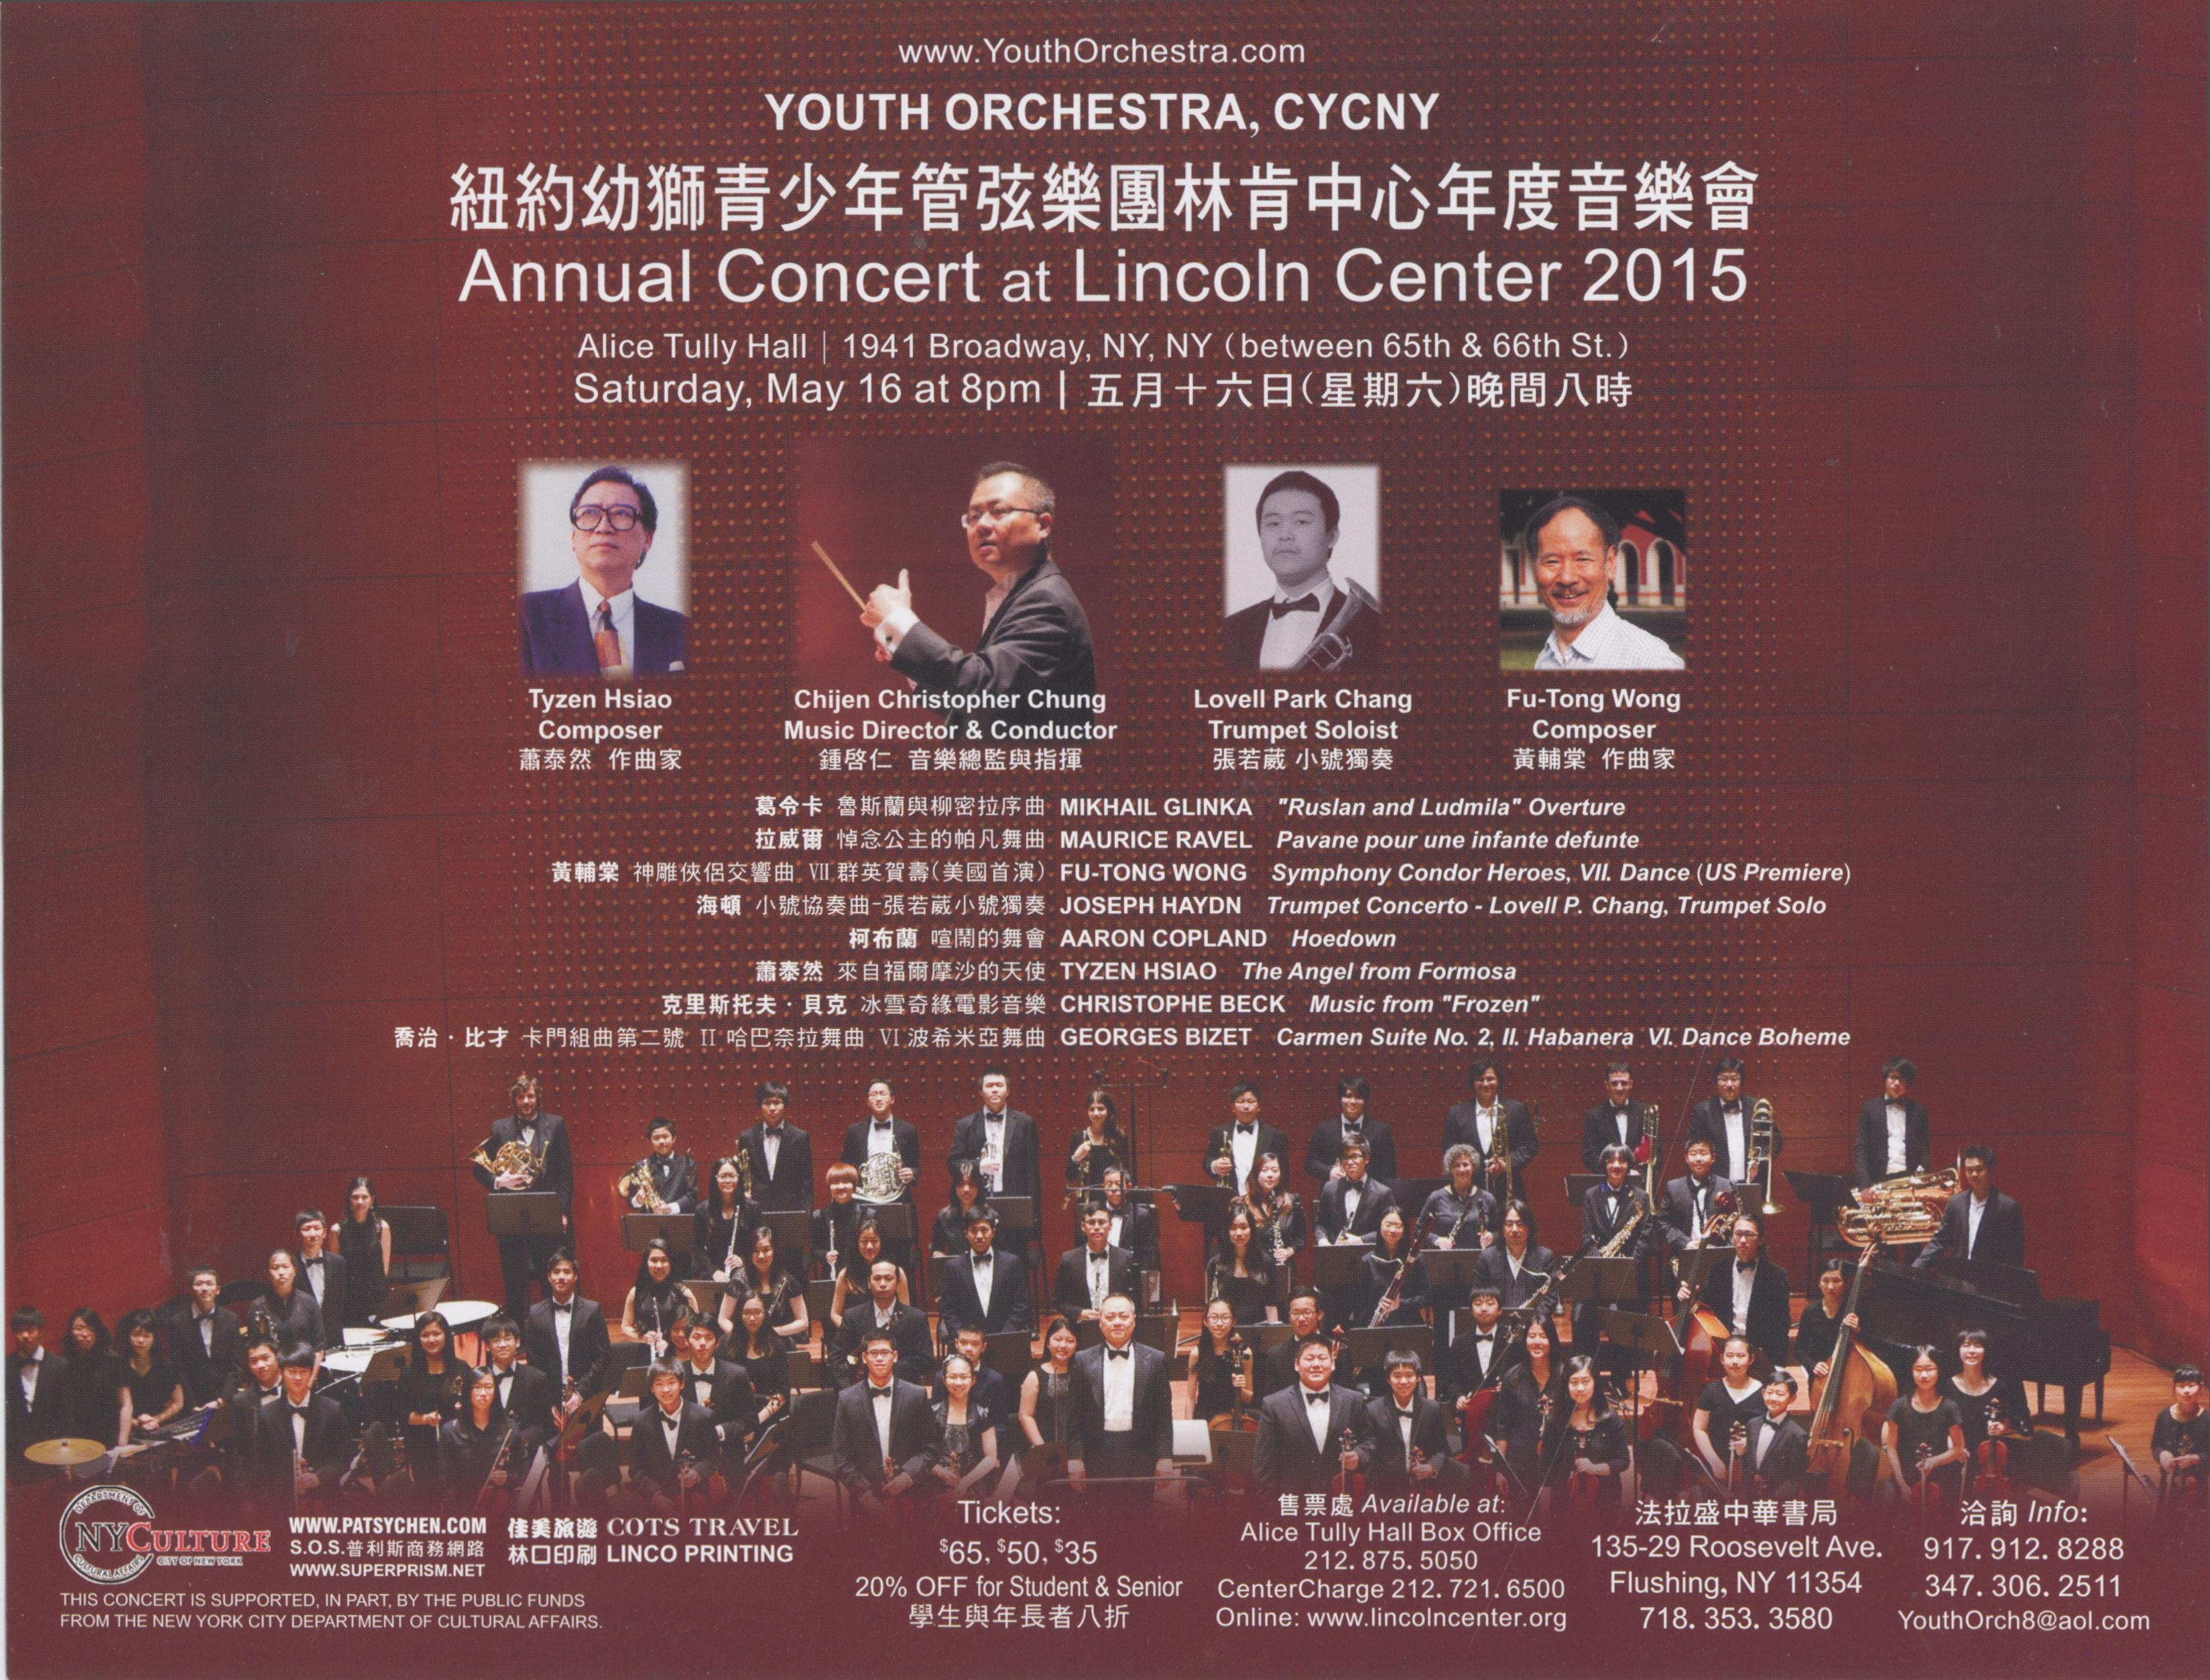 6. Annual Concert at Lincoln Center (林肯中心年度音樂會) by Youth Orchestra, CYCNY (紐約幼獅青少年管弦樂團),  New York, NY on 2004, 2005, 2006, 2008, 2009, 2010, 2011, 2012, 2013, 2014, 2015, 2016, 2017